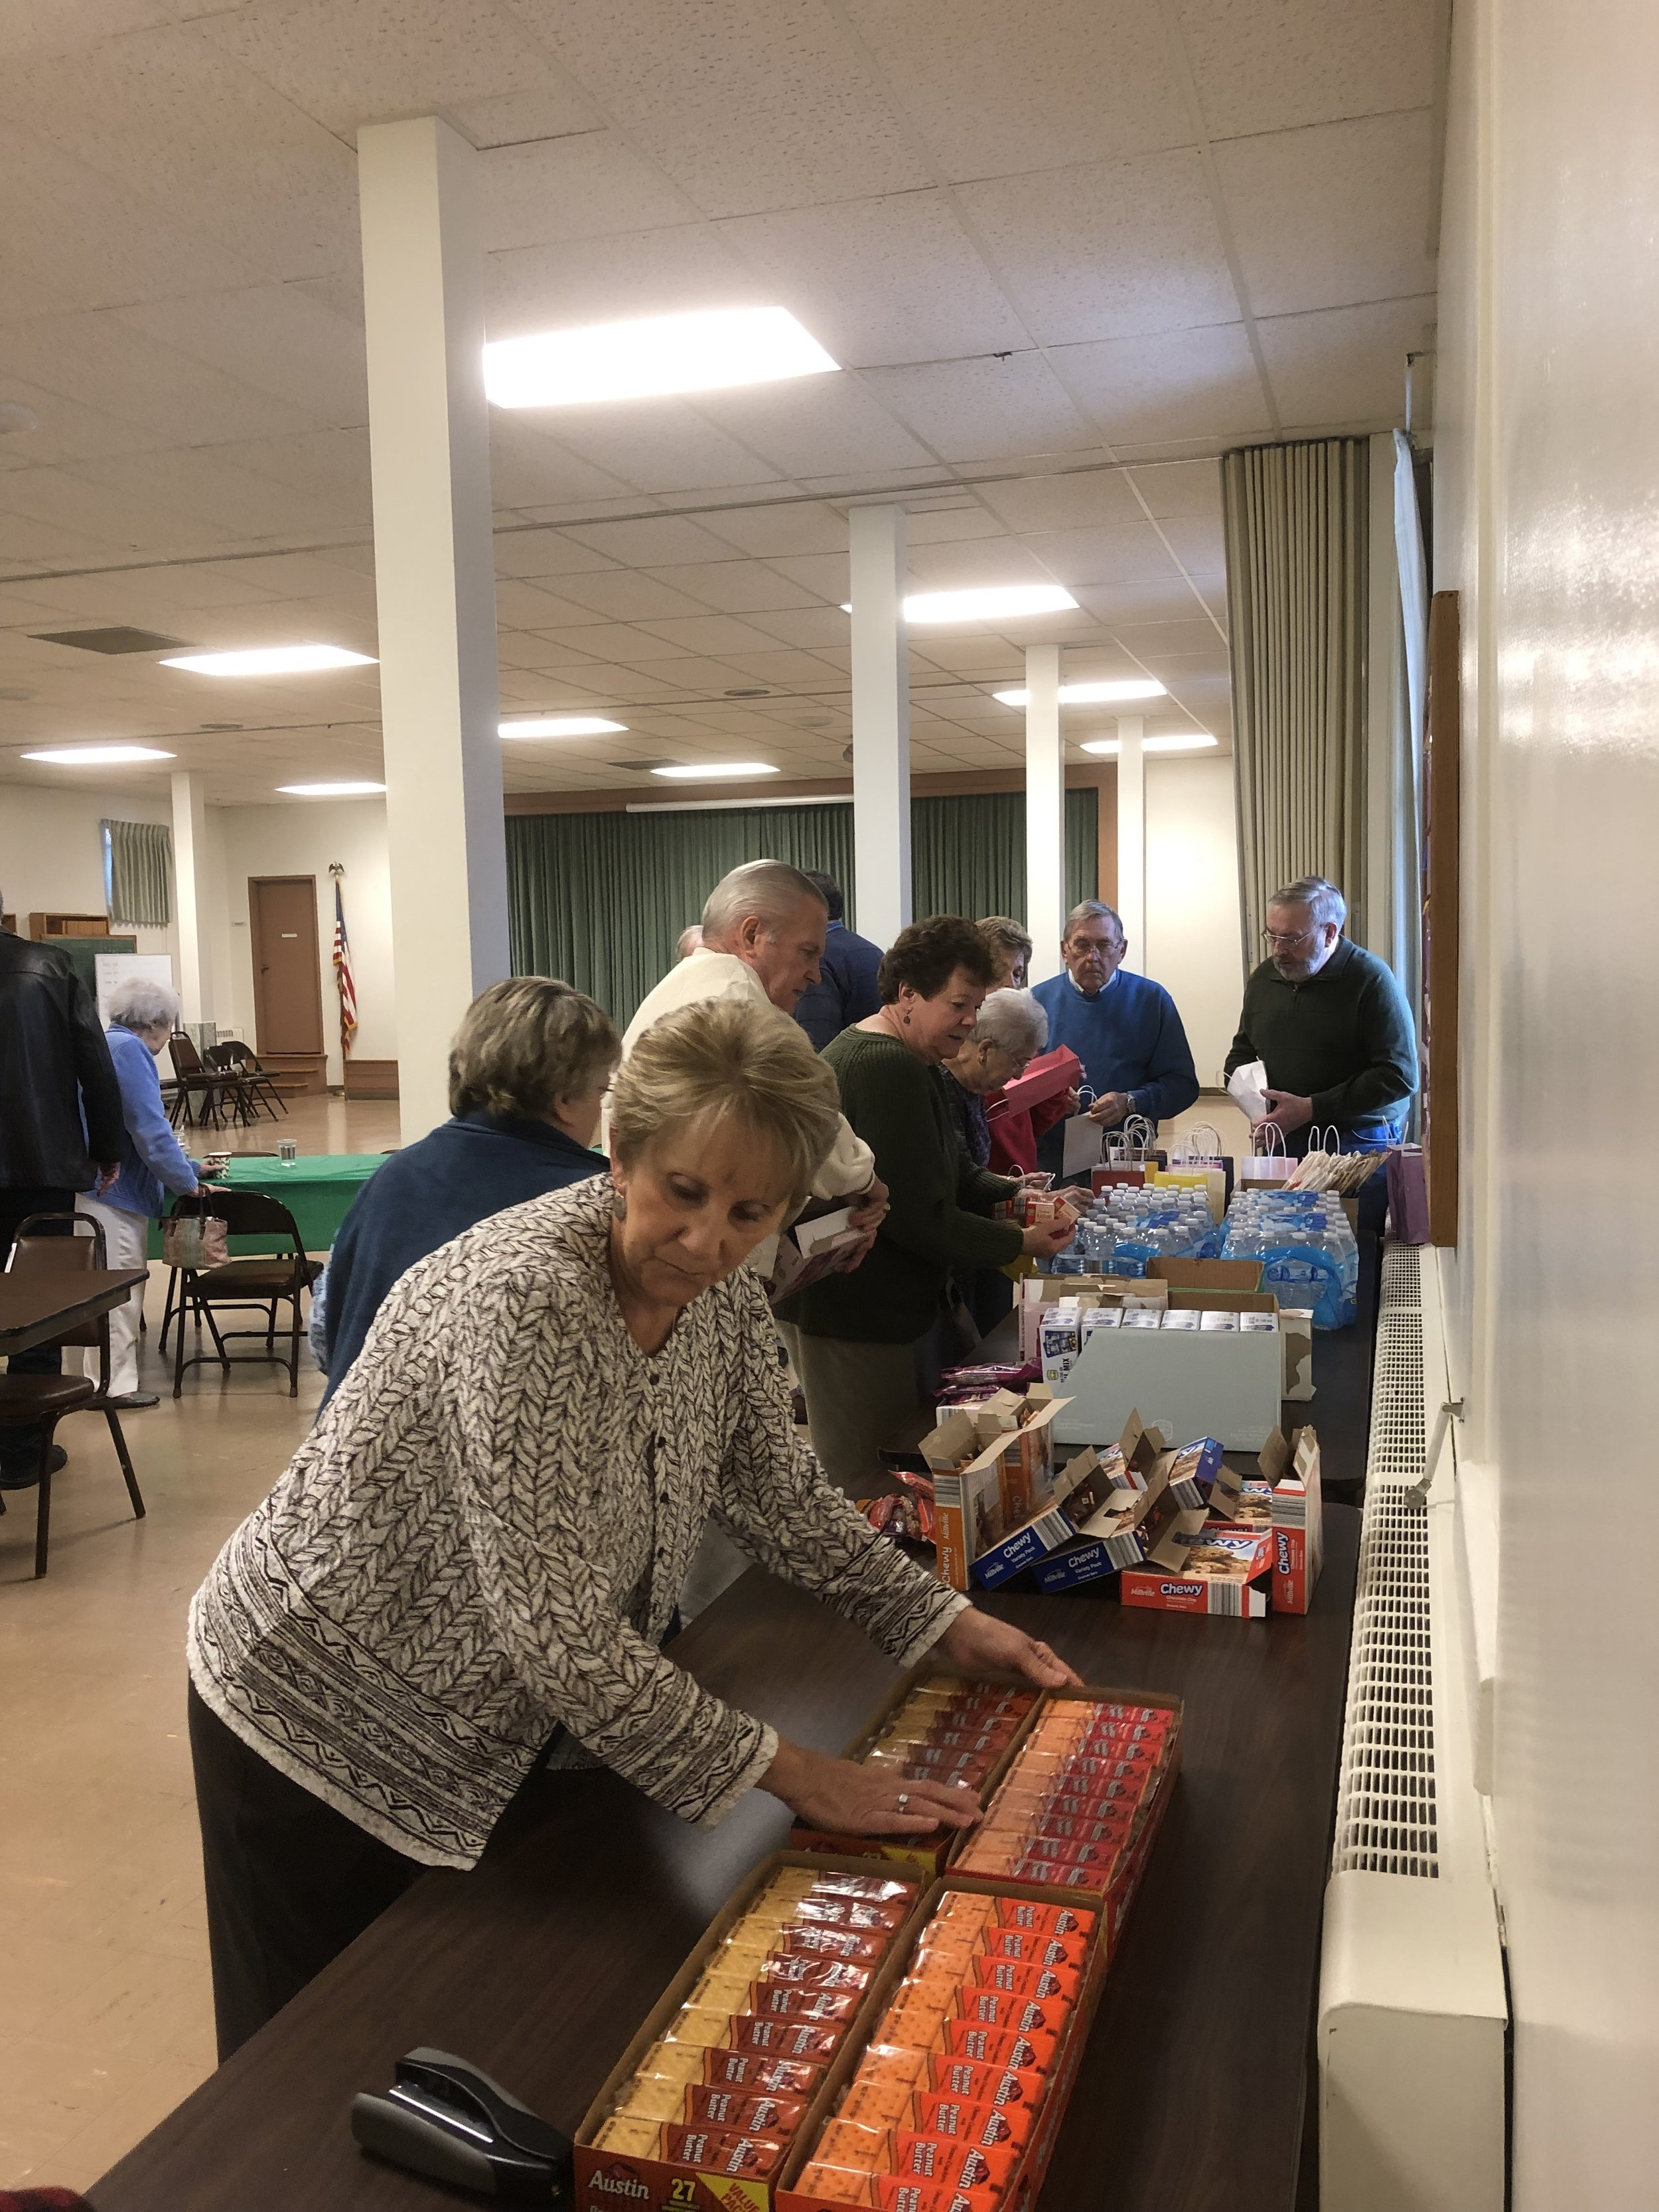 Church members putting together Bags of Love for people in need. Part of Worship on Wednesday activities on December, 2018. (photo Pastor Parsh)